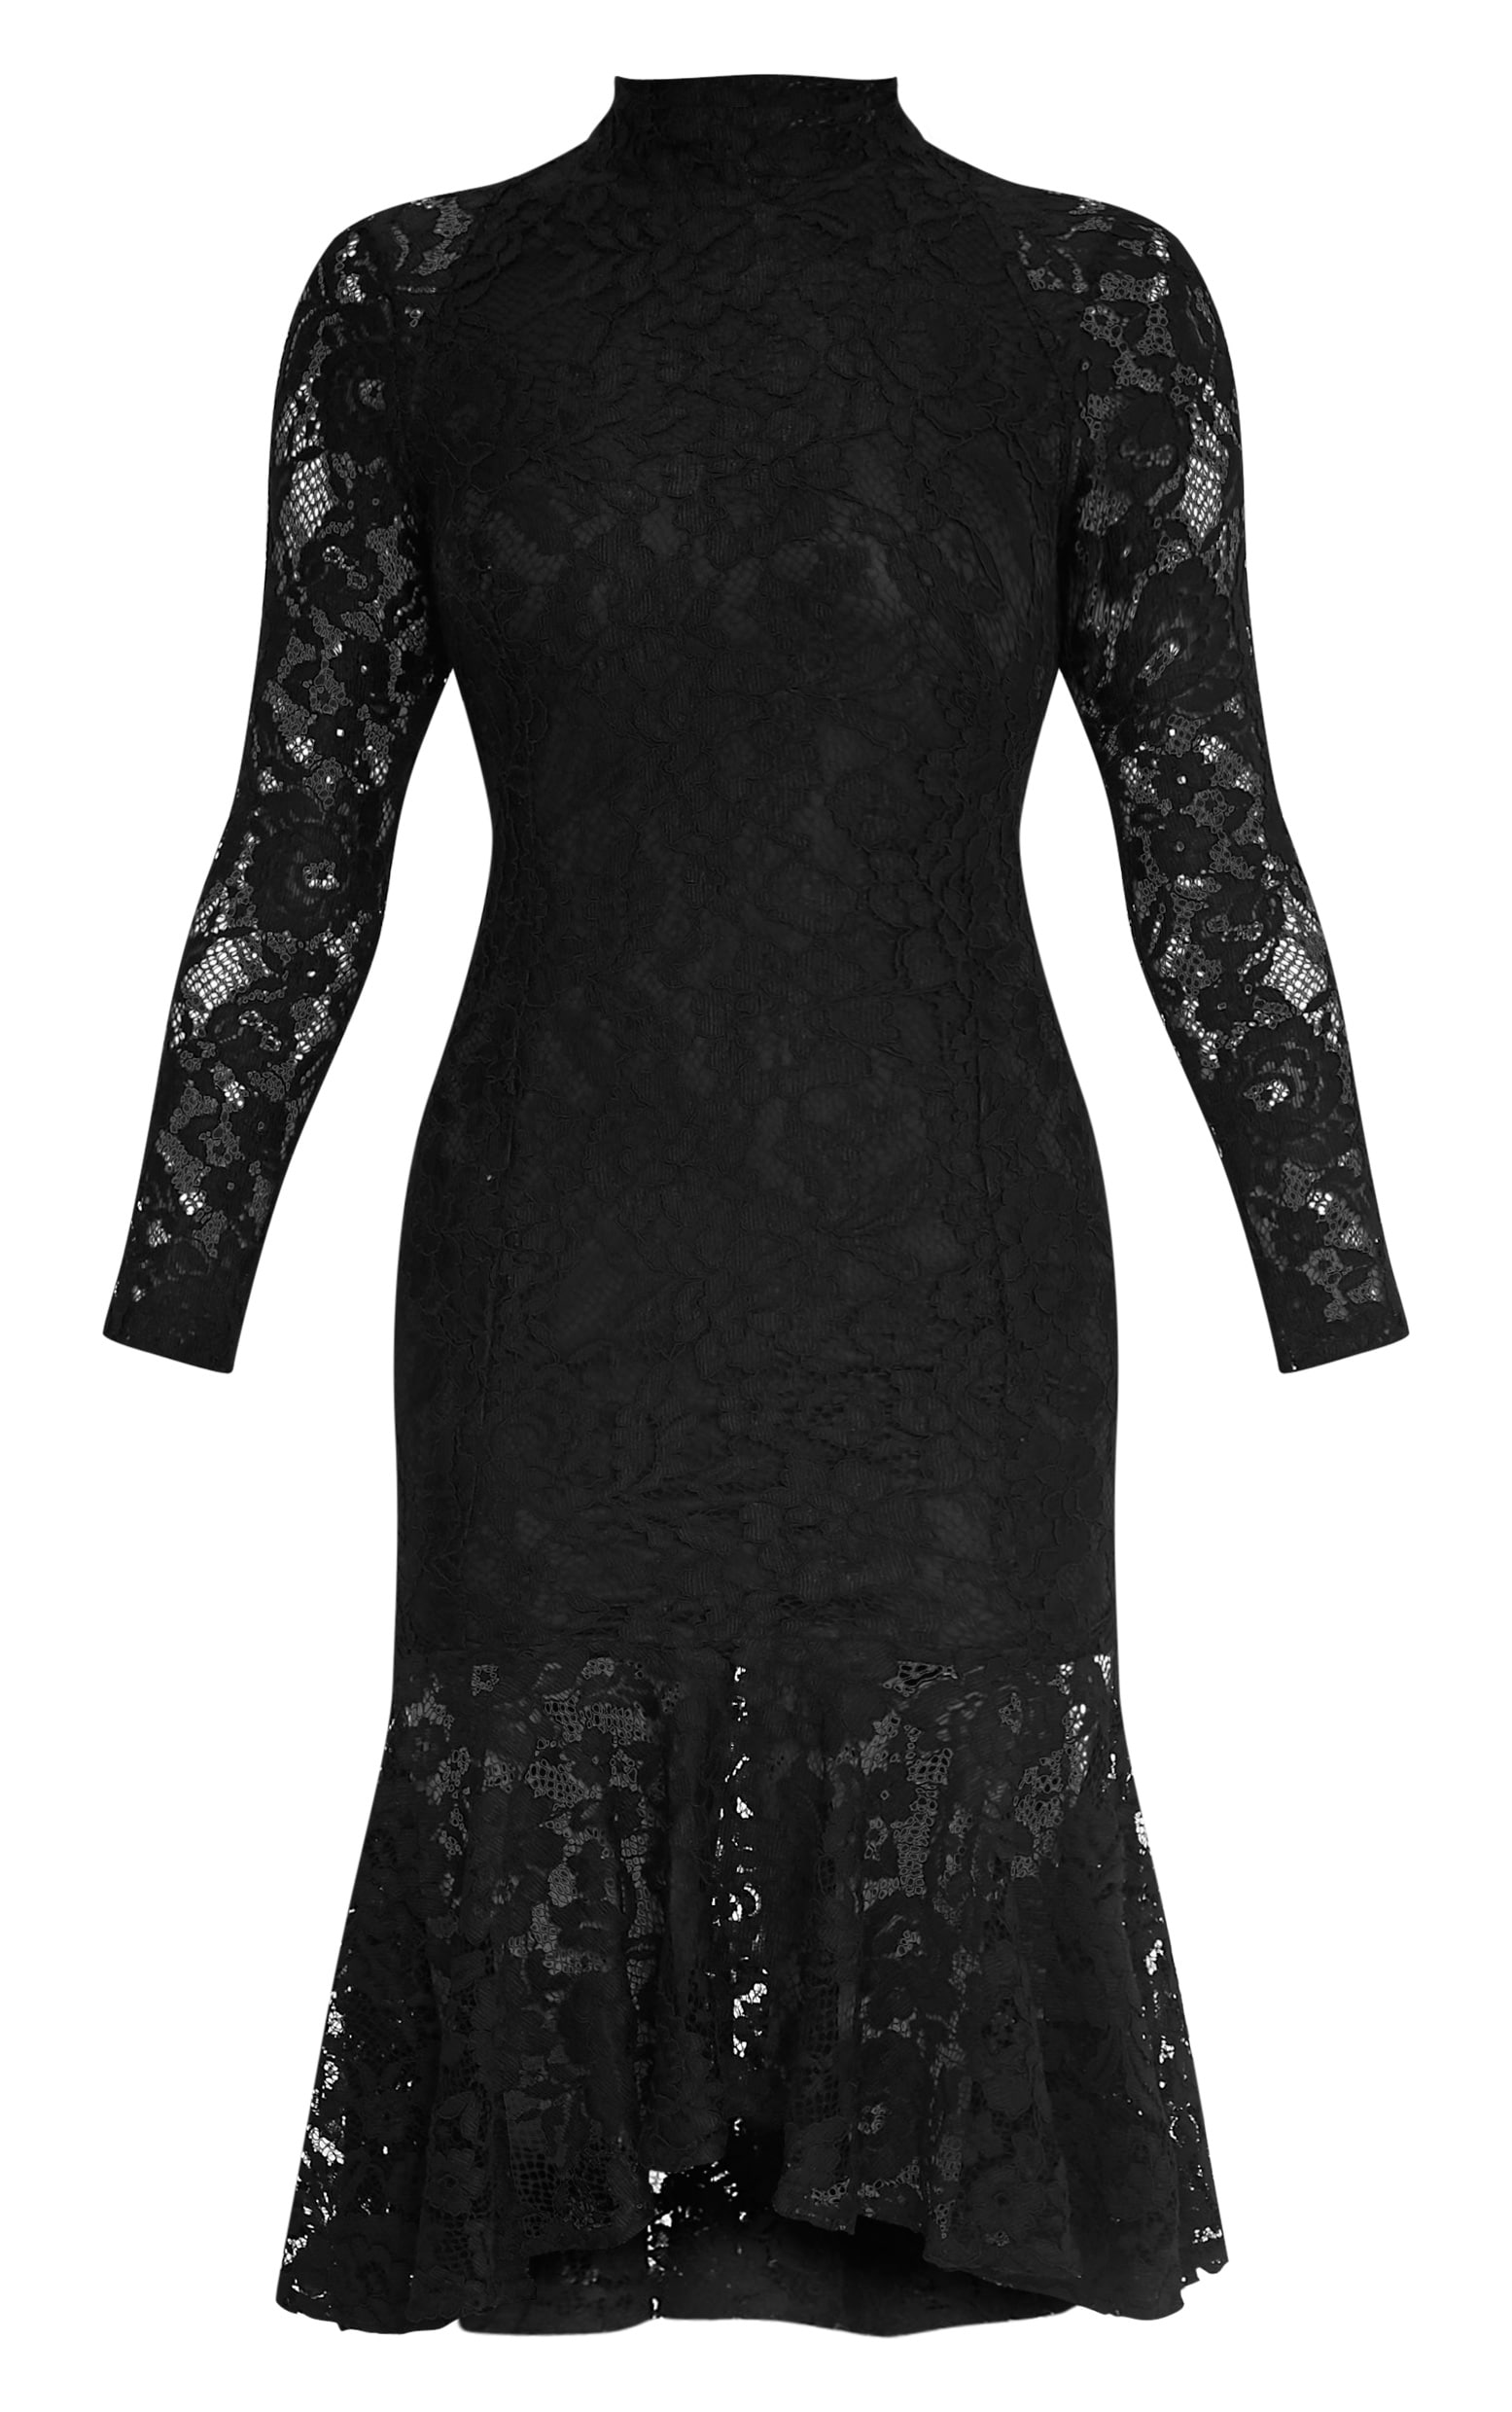 Ellina Premium robe midi noire queue de poisson 3